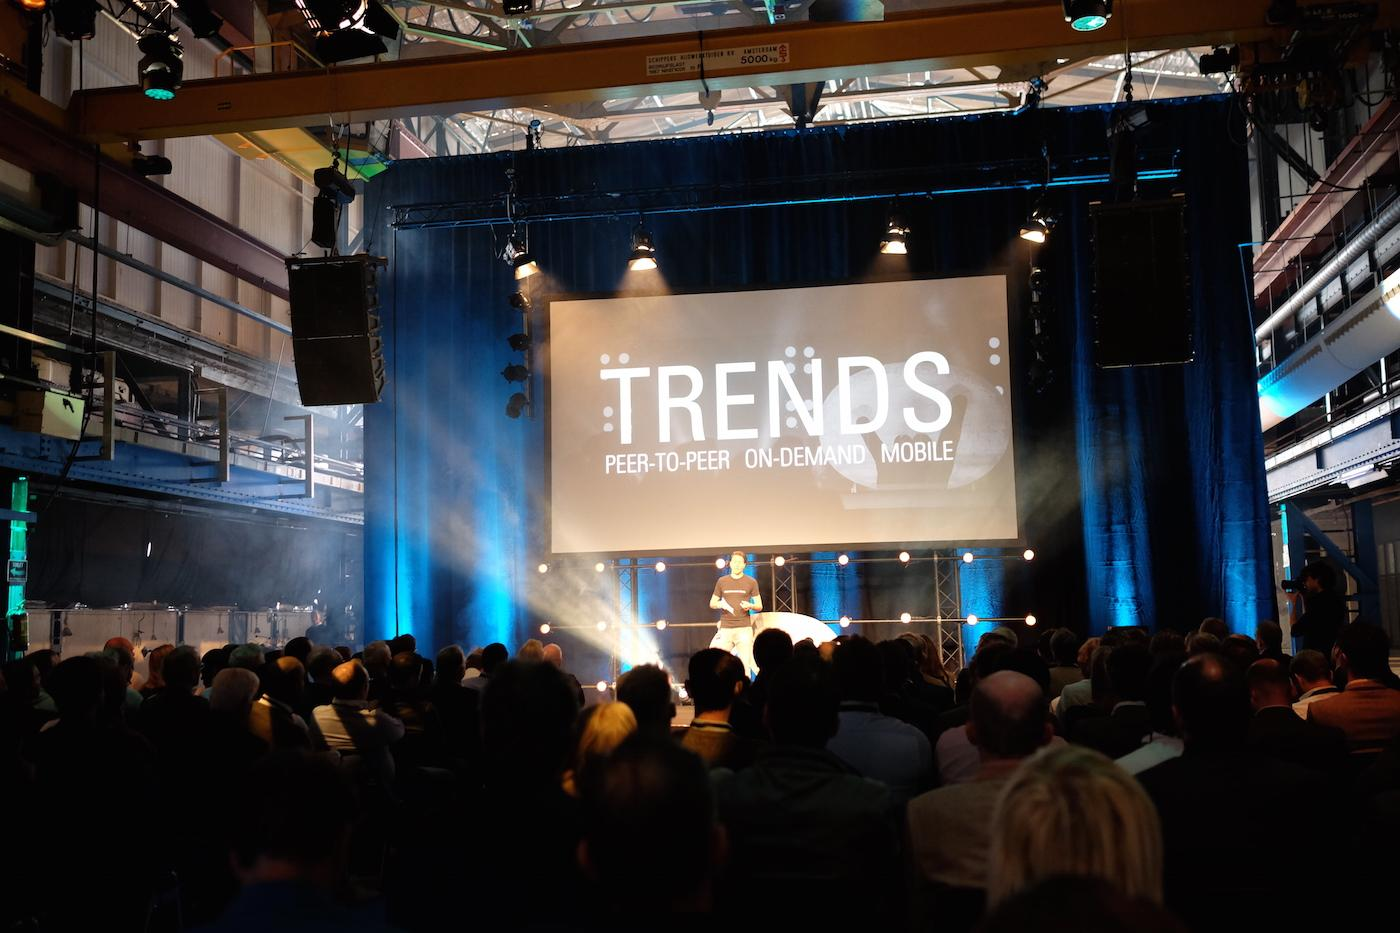 RT @TheNextWeb: 10 startups that graduated from Rockstart's Amsterdam 2015 cohort http://t.co/ZRVwLYJKTo http://t.co/9O4z3cCiFh